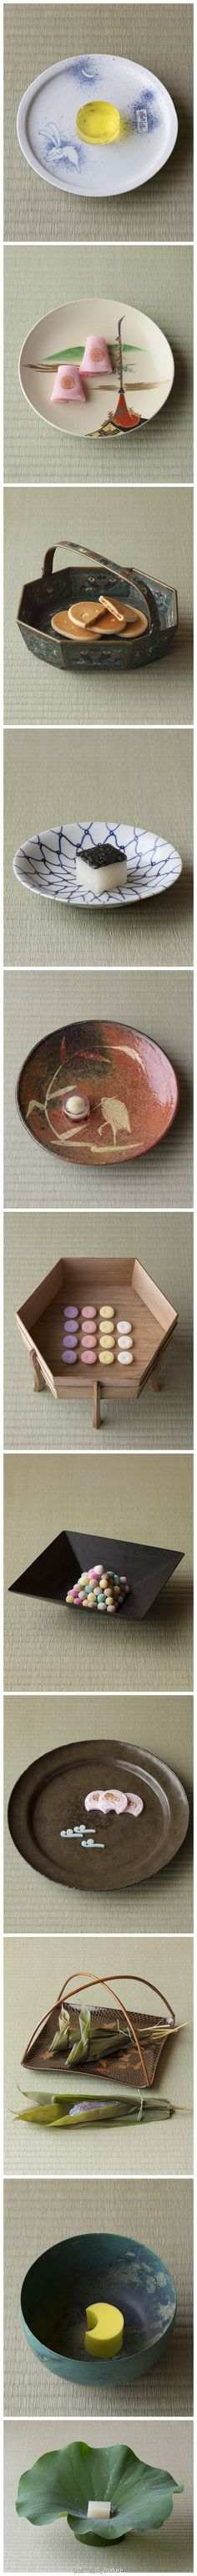 Picking plates to serve Japanese sweet is a kind of art! Japanese Treats, Japanese Candy, Japanese Food, Japanese Wagashi, Japanese Sweet, Japanese Tea Ceremony, Asian Desserts, Cute Food, Confectionery